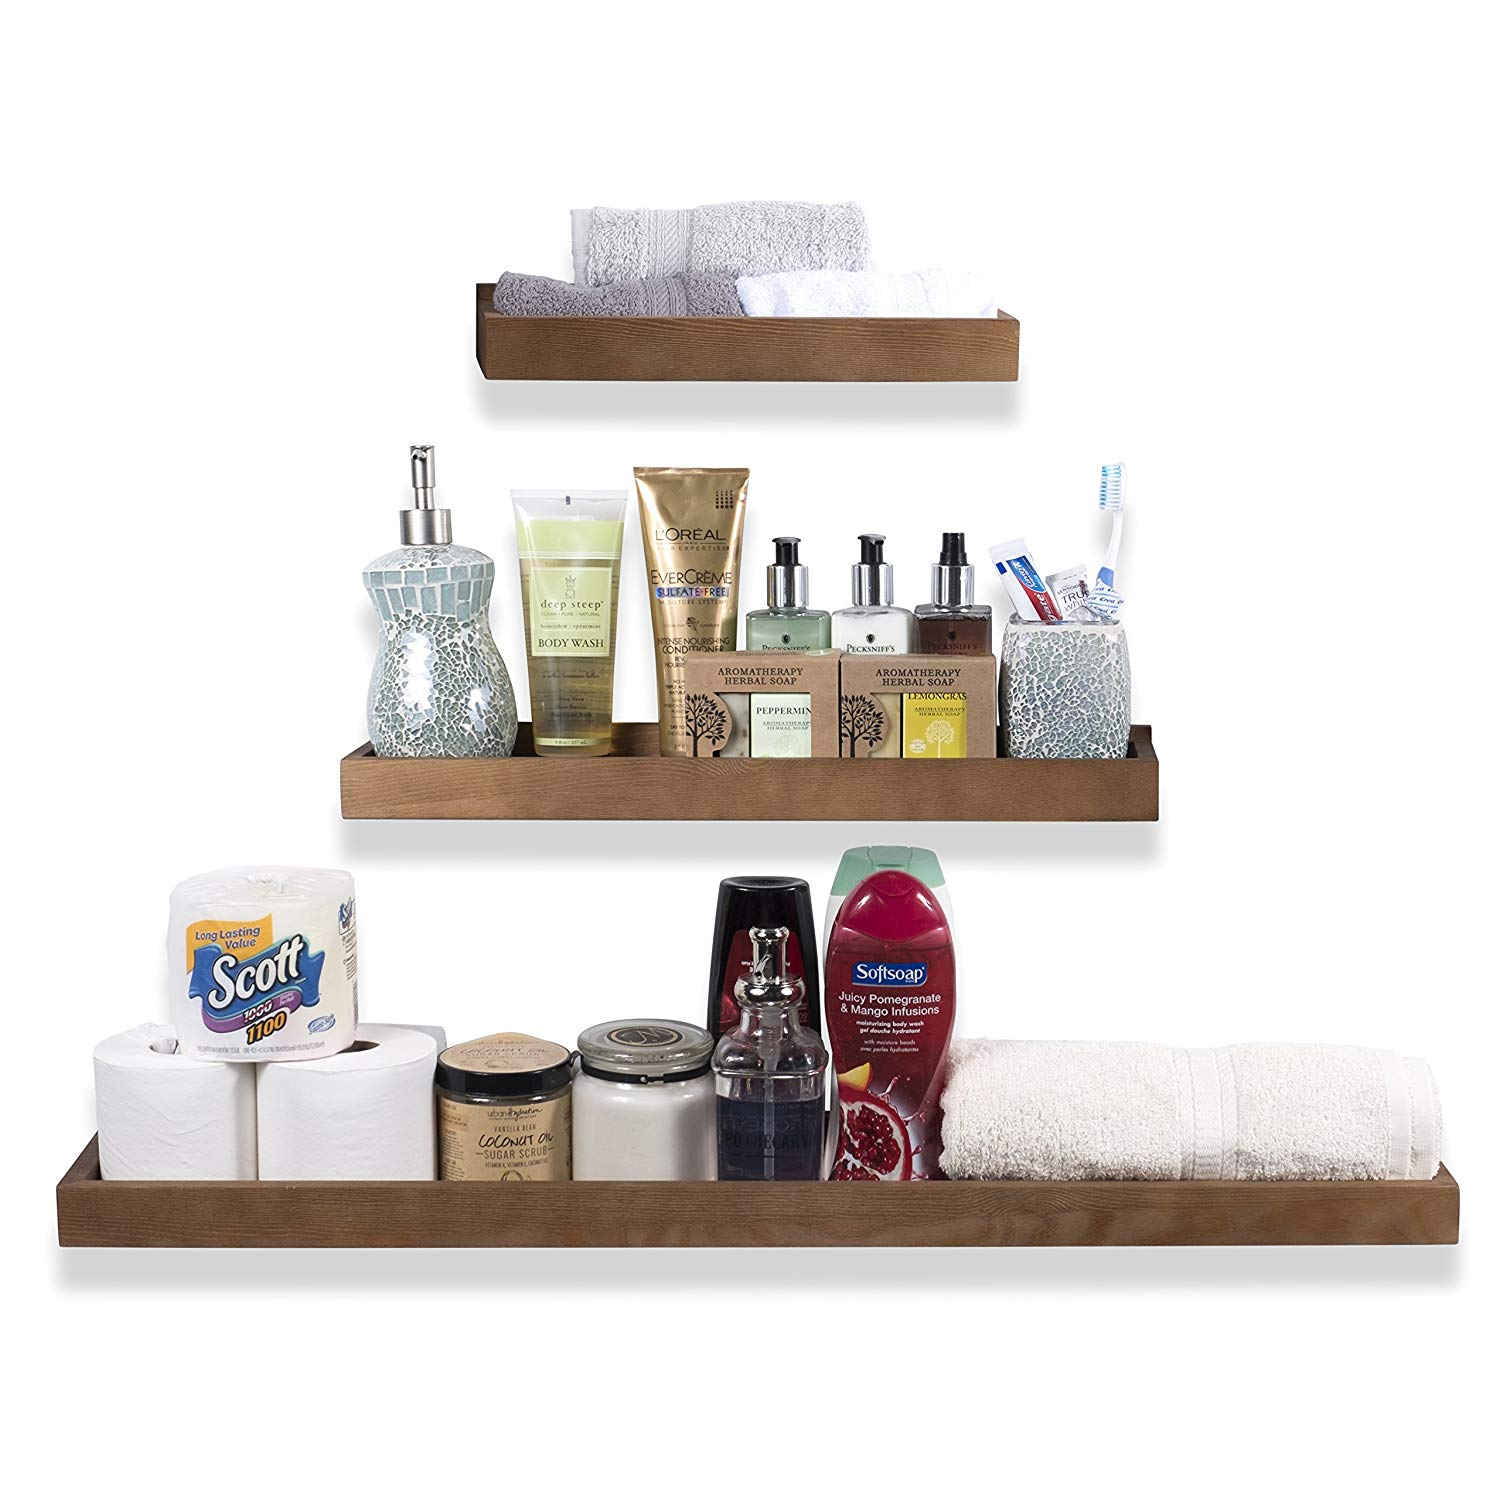 wallniture philly varying sizes floating shelves trays wood shelf bathroom bookshelves and display bookcase modern shelving for kids room nursery wall mounted quirky brackets